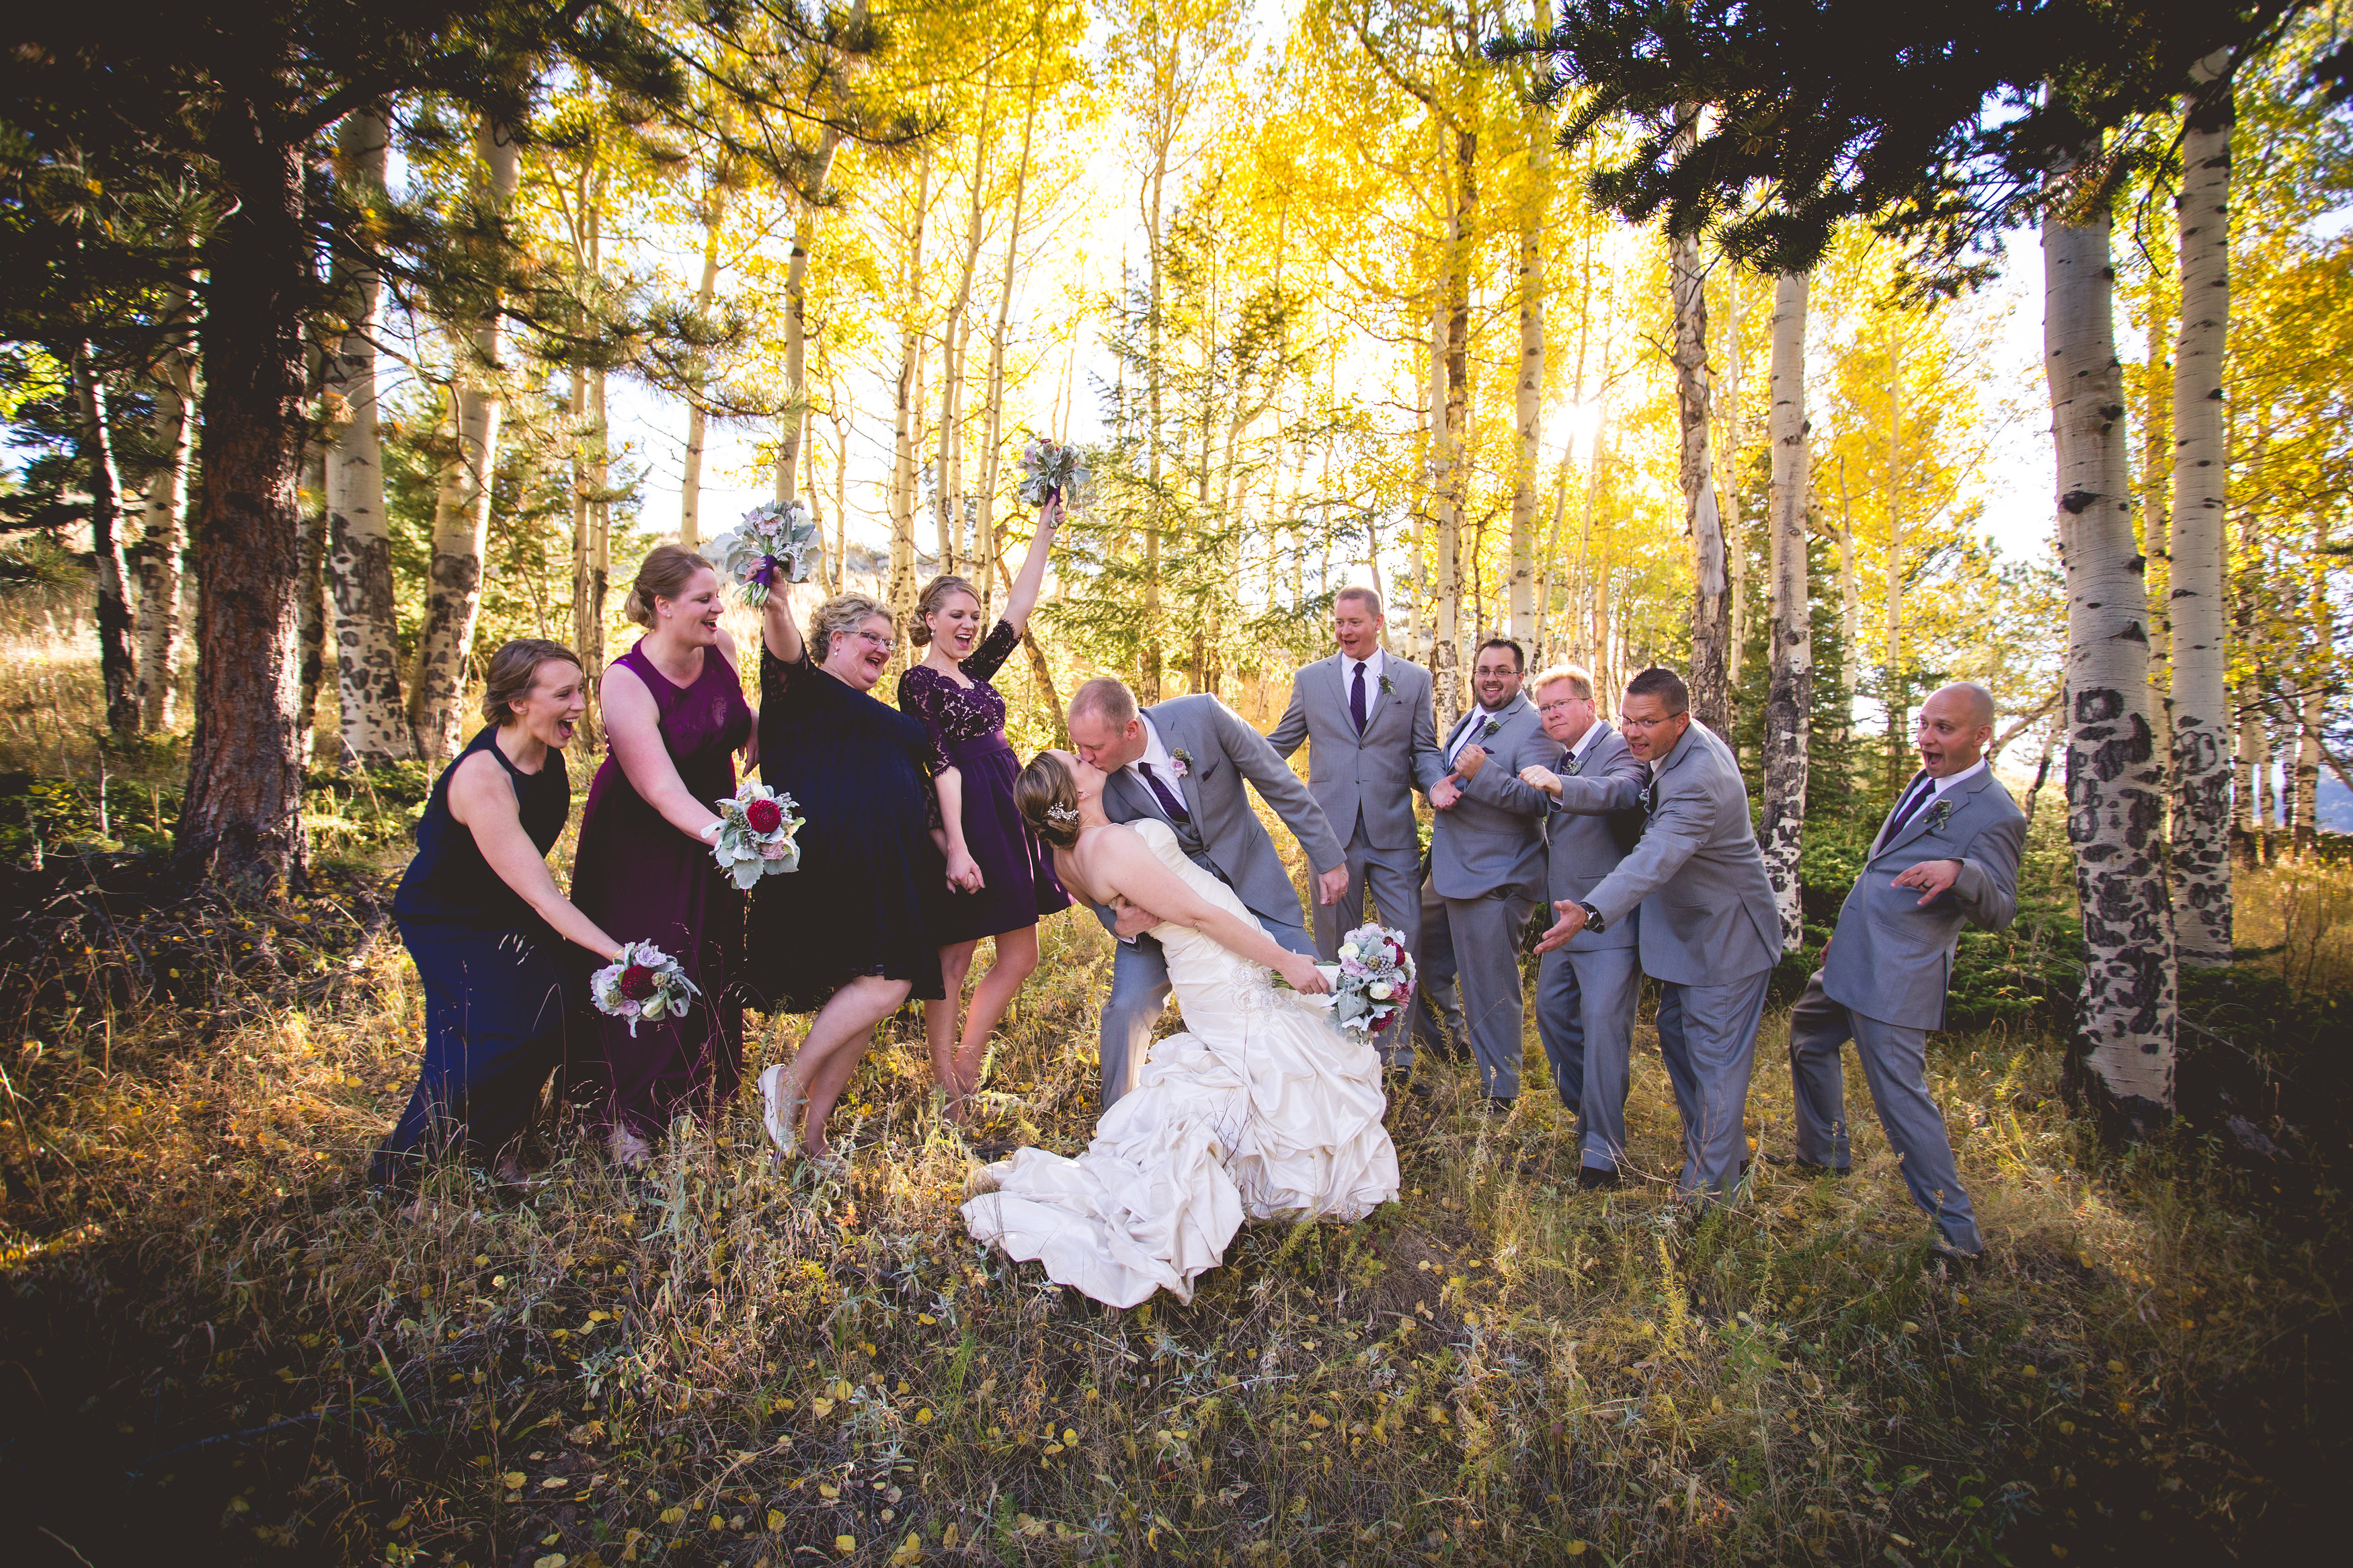 Lathrop_wedding-359